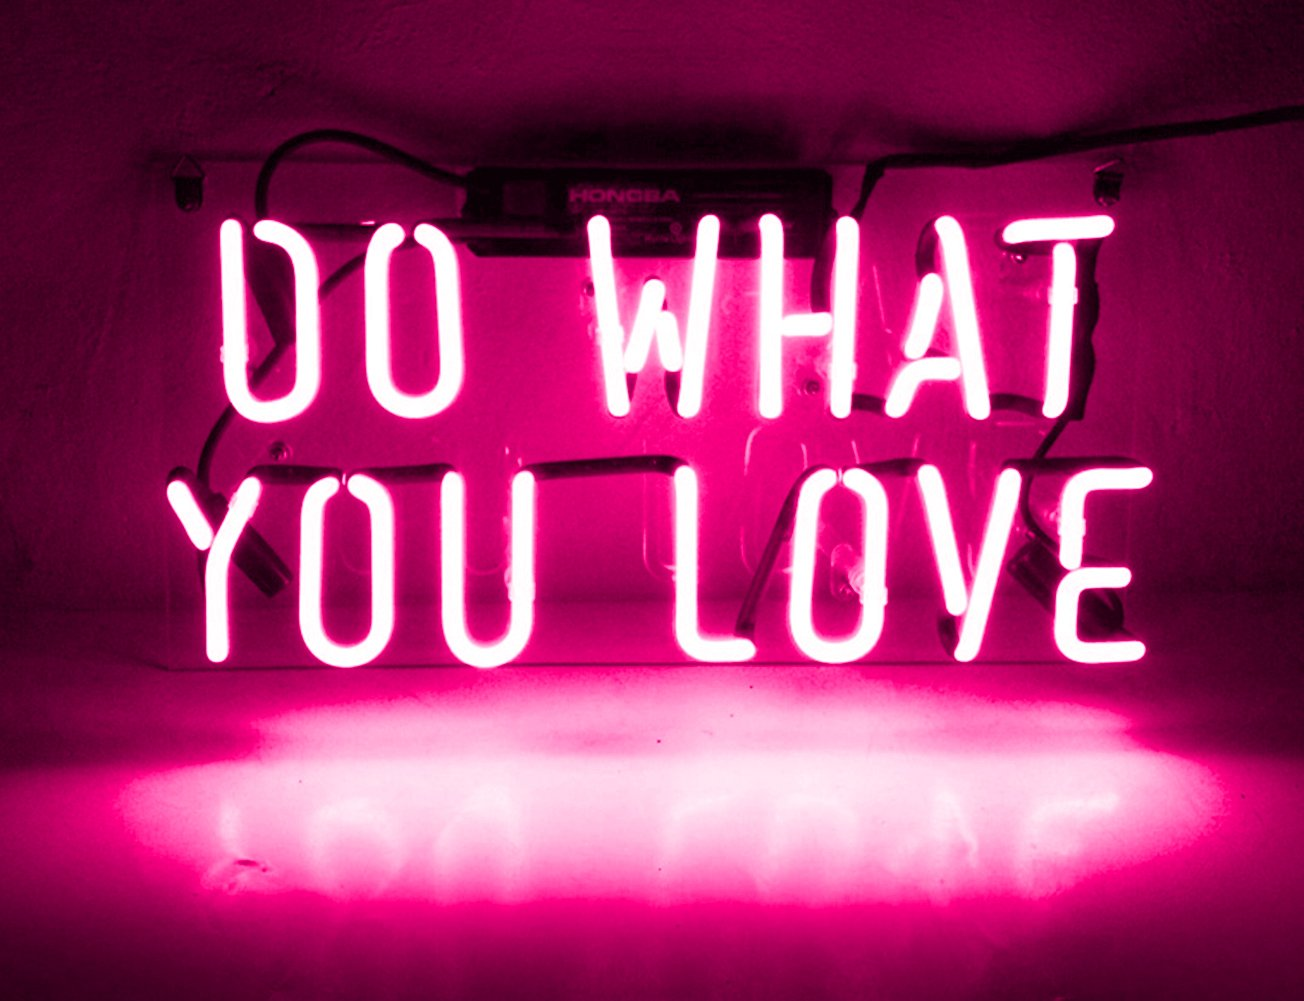 Do What You Love Neon Sign Neon Signs Neon Lights Halloween Signs Led Wall Lamp Light up for Room Bedroom Beer Bar